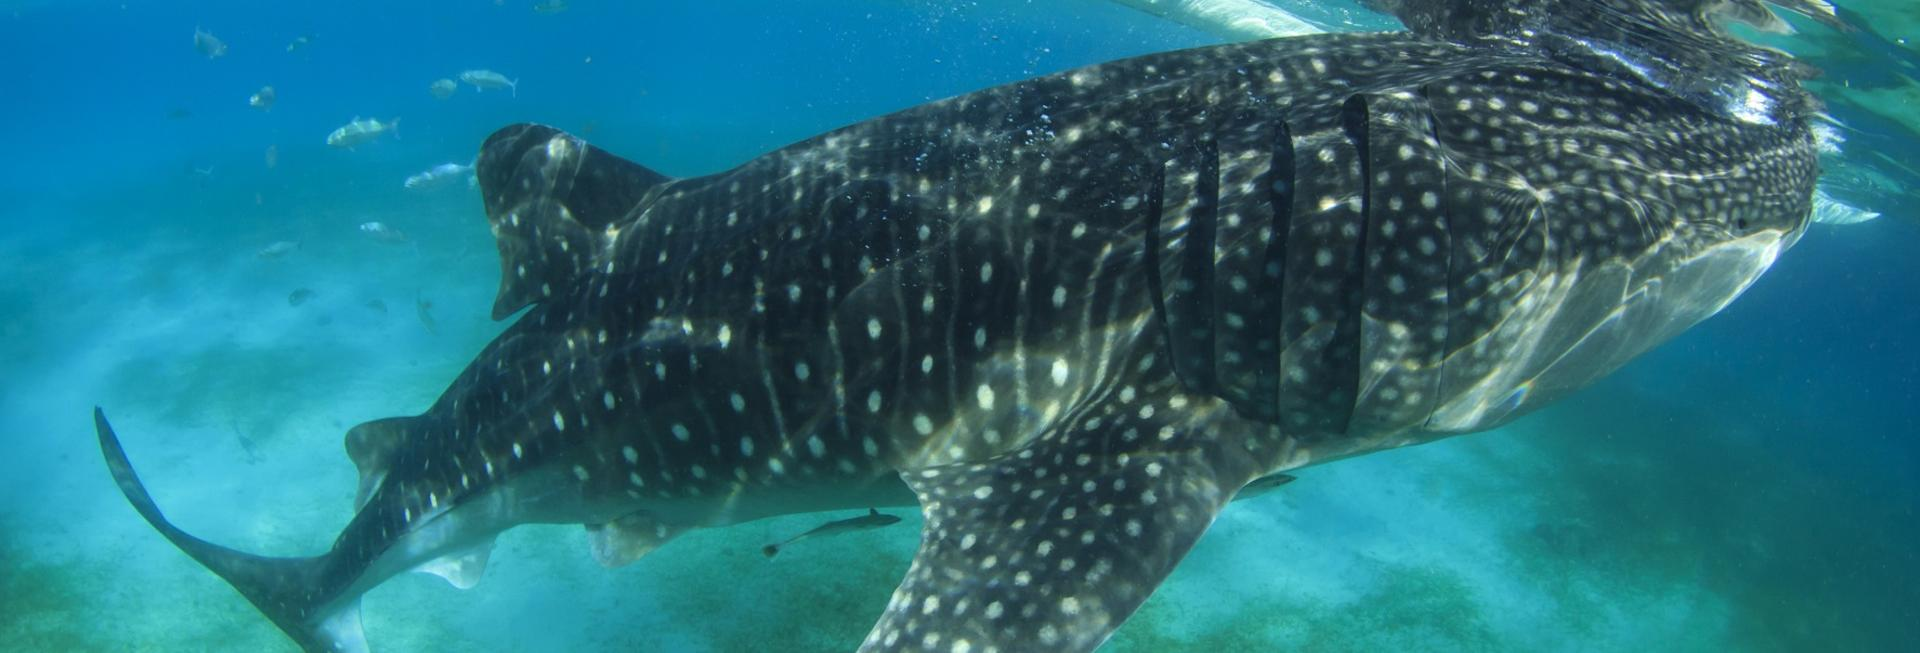 Whale Shark, Donsol, the Philippines